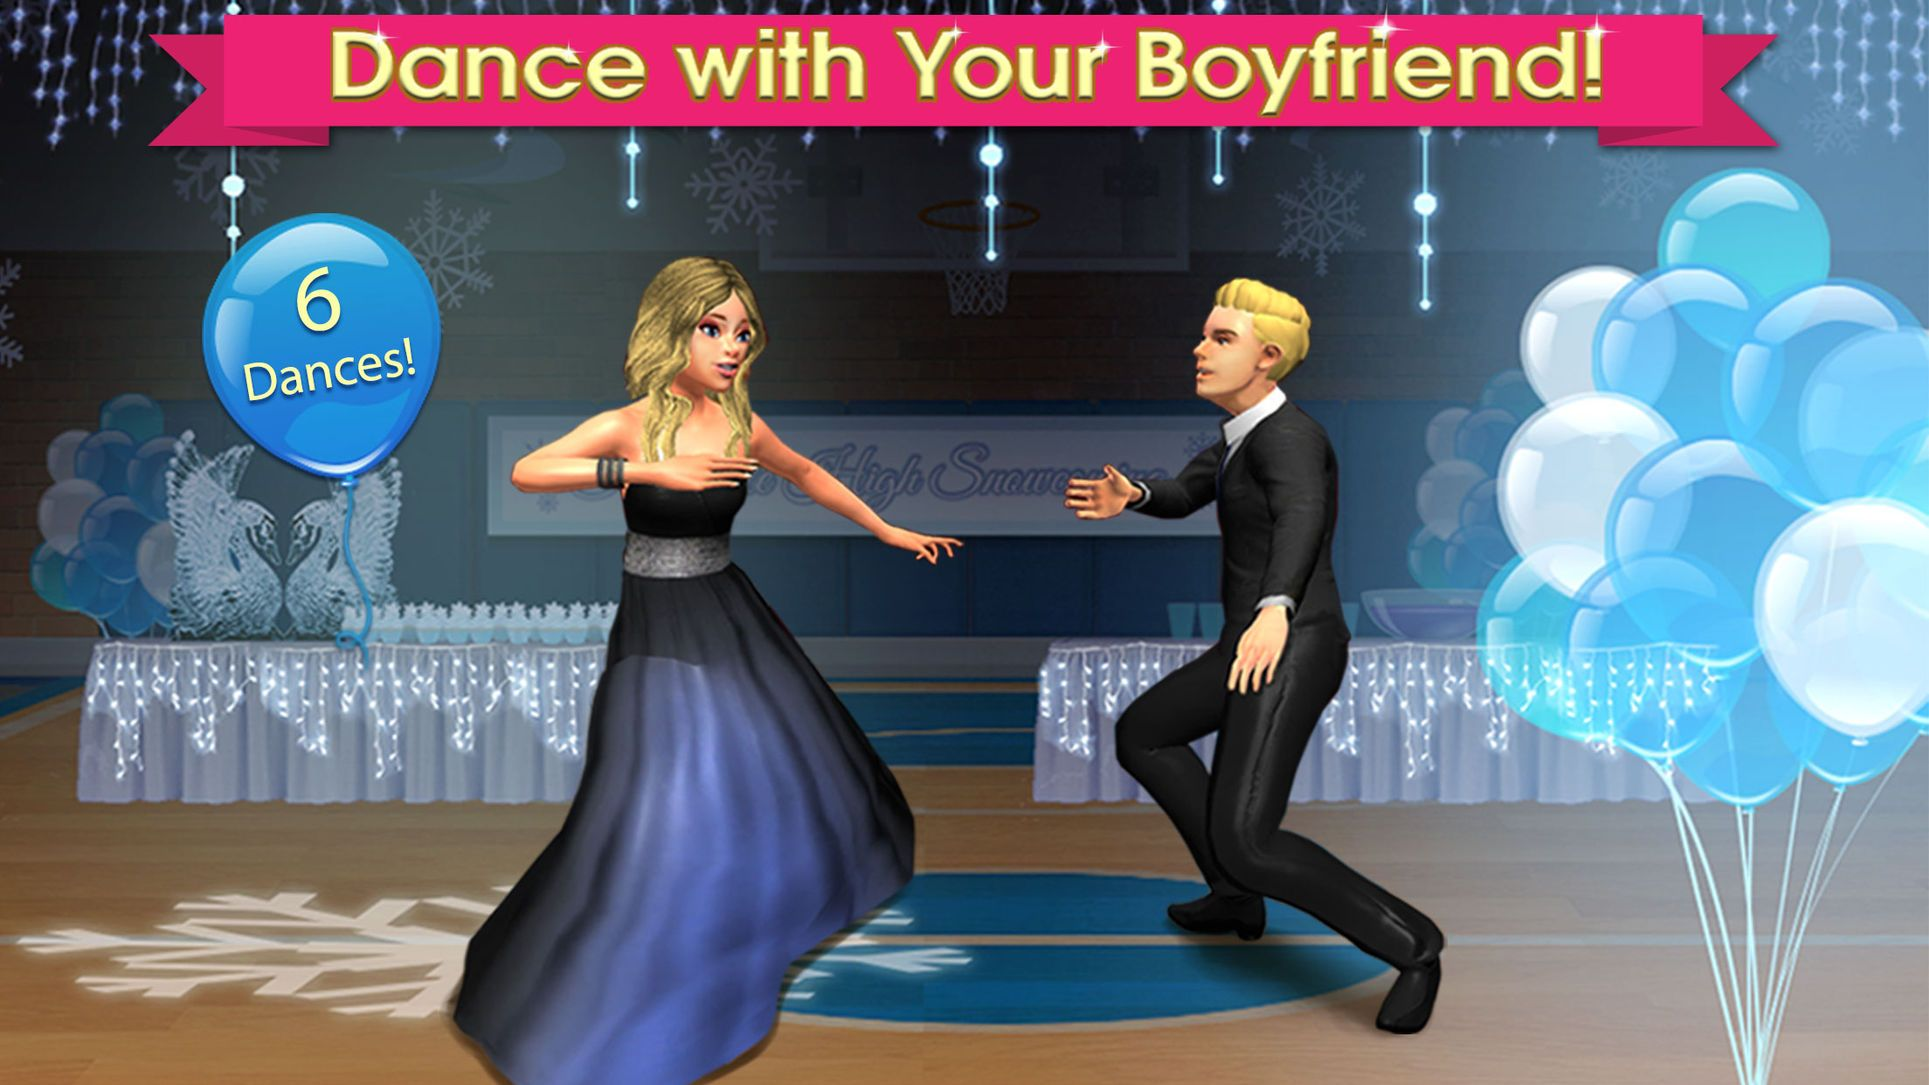 Virtual high school dating games be2 dating site complaints